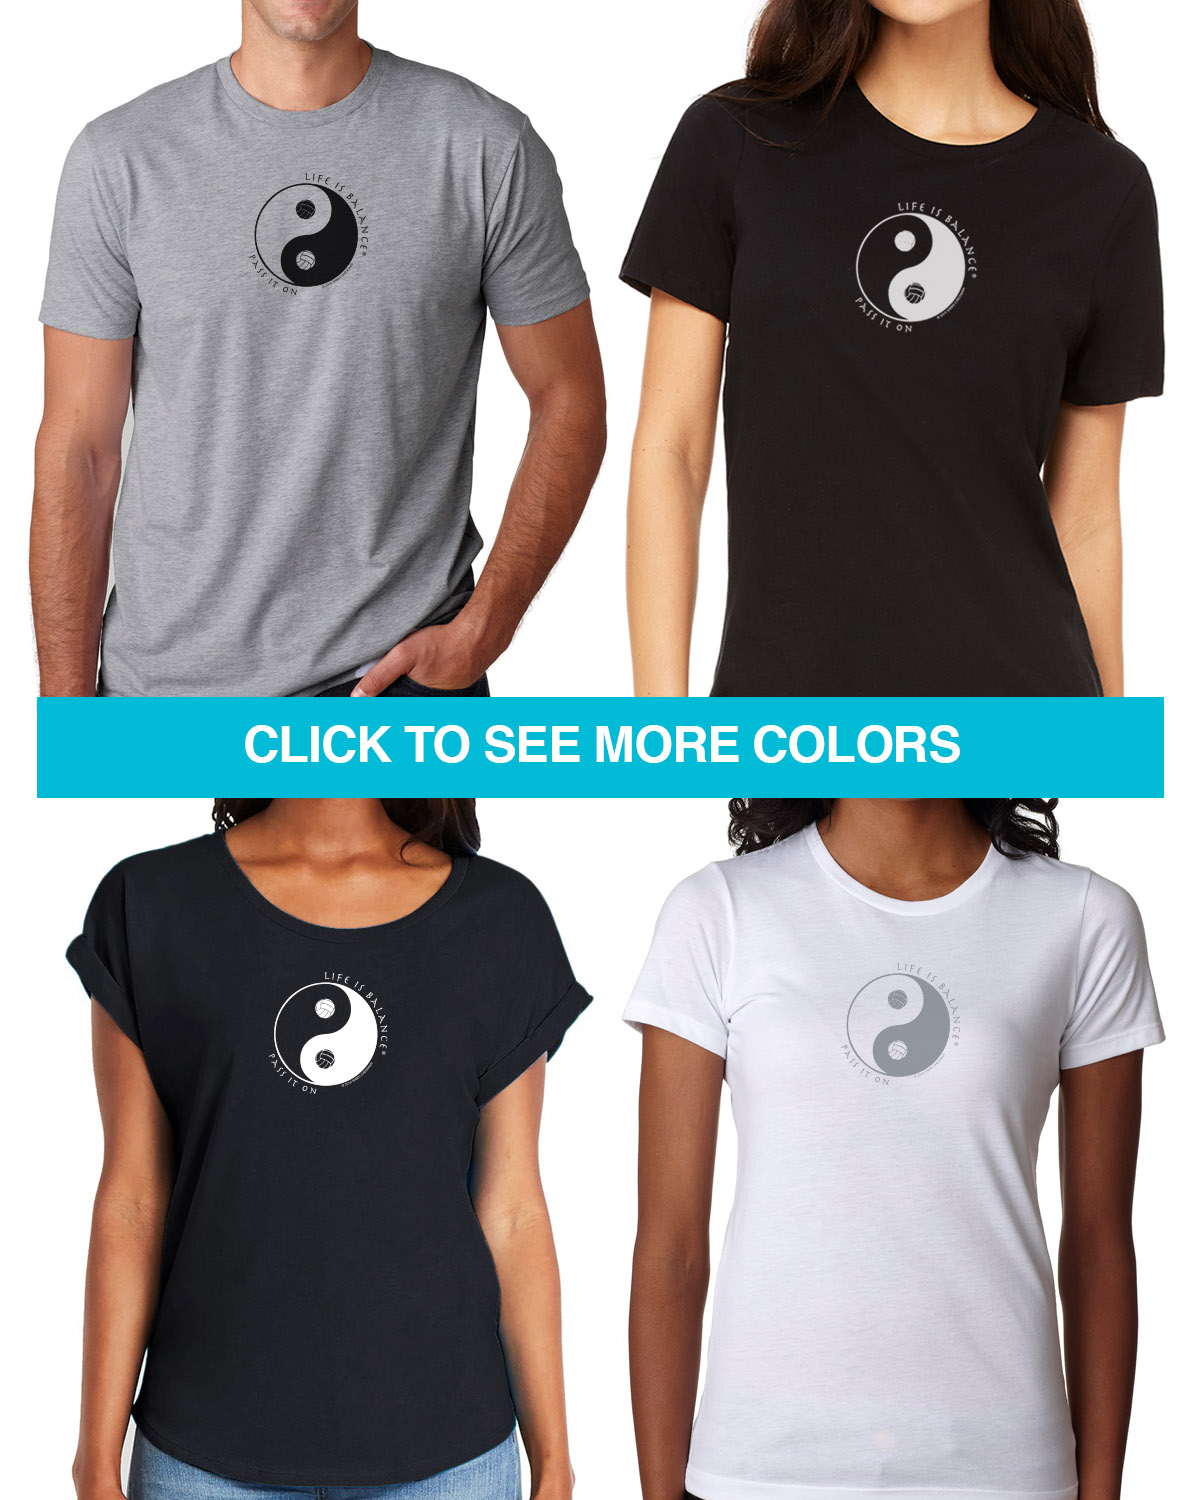 Baseball and Softball short sleeve T-shirts for Men and Women. Women's fitted styles and a unisex style for men and wome